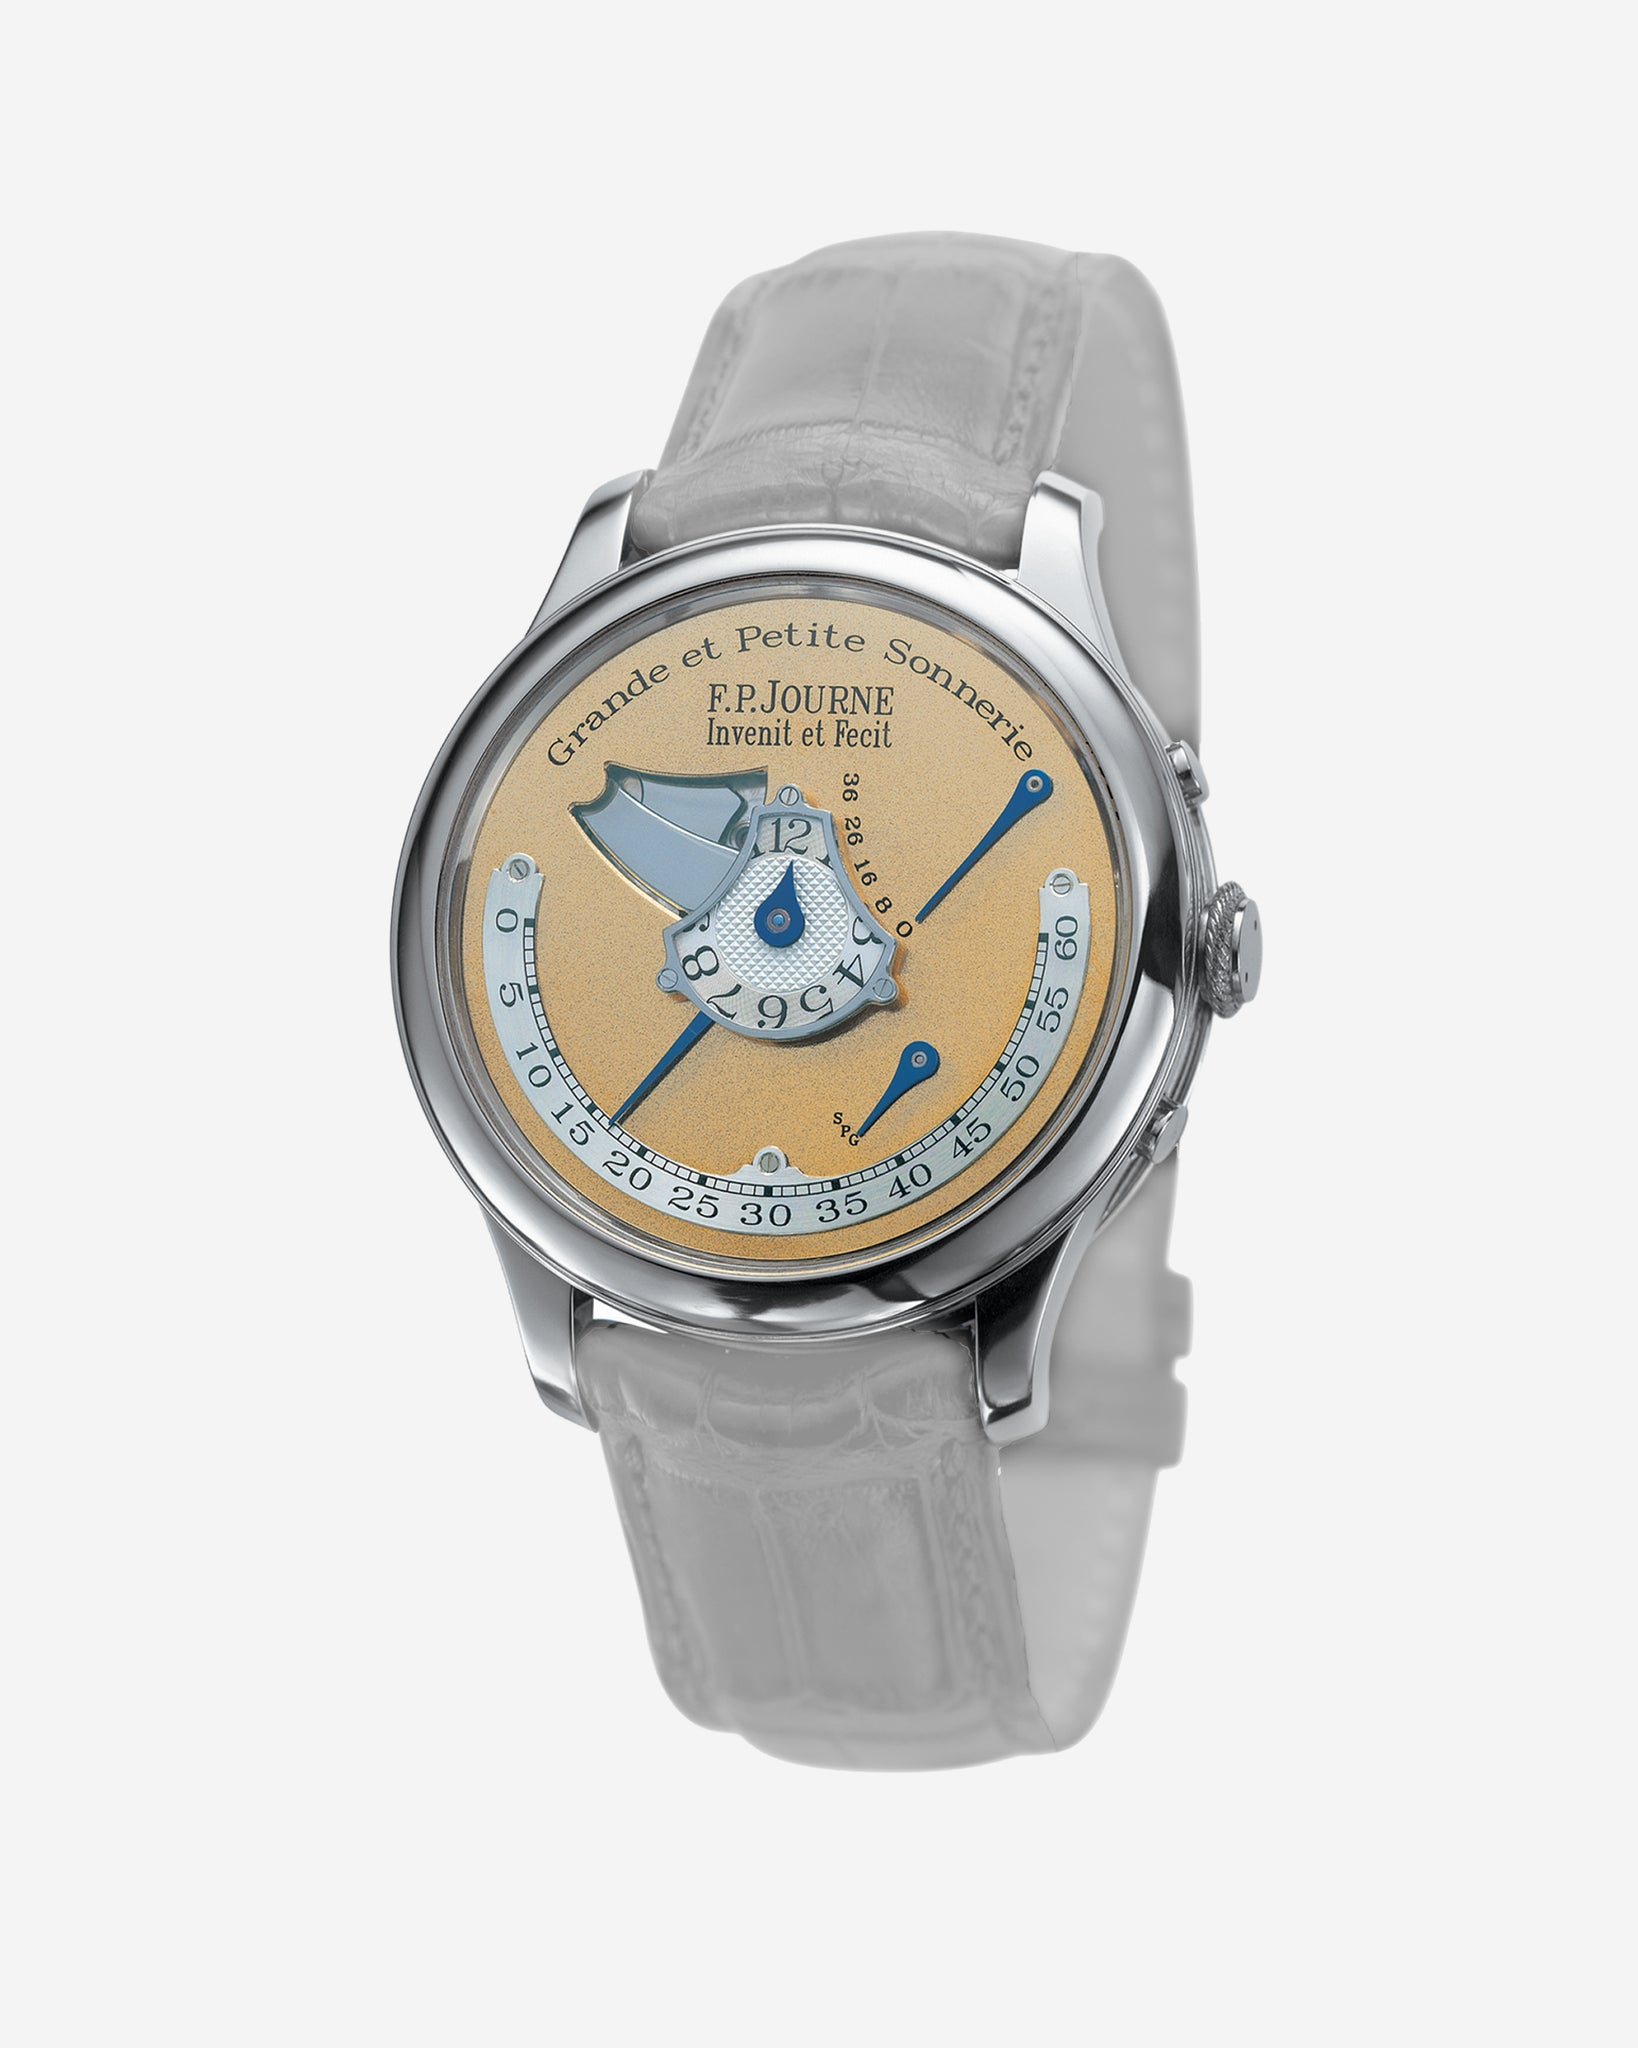 A unique F.P. Journe Grande et Petite Sonnerie that now sits in the collection of the Sultan of Oman